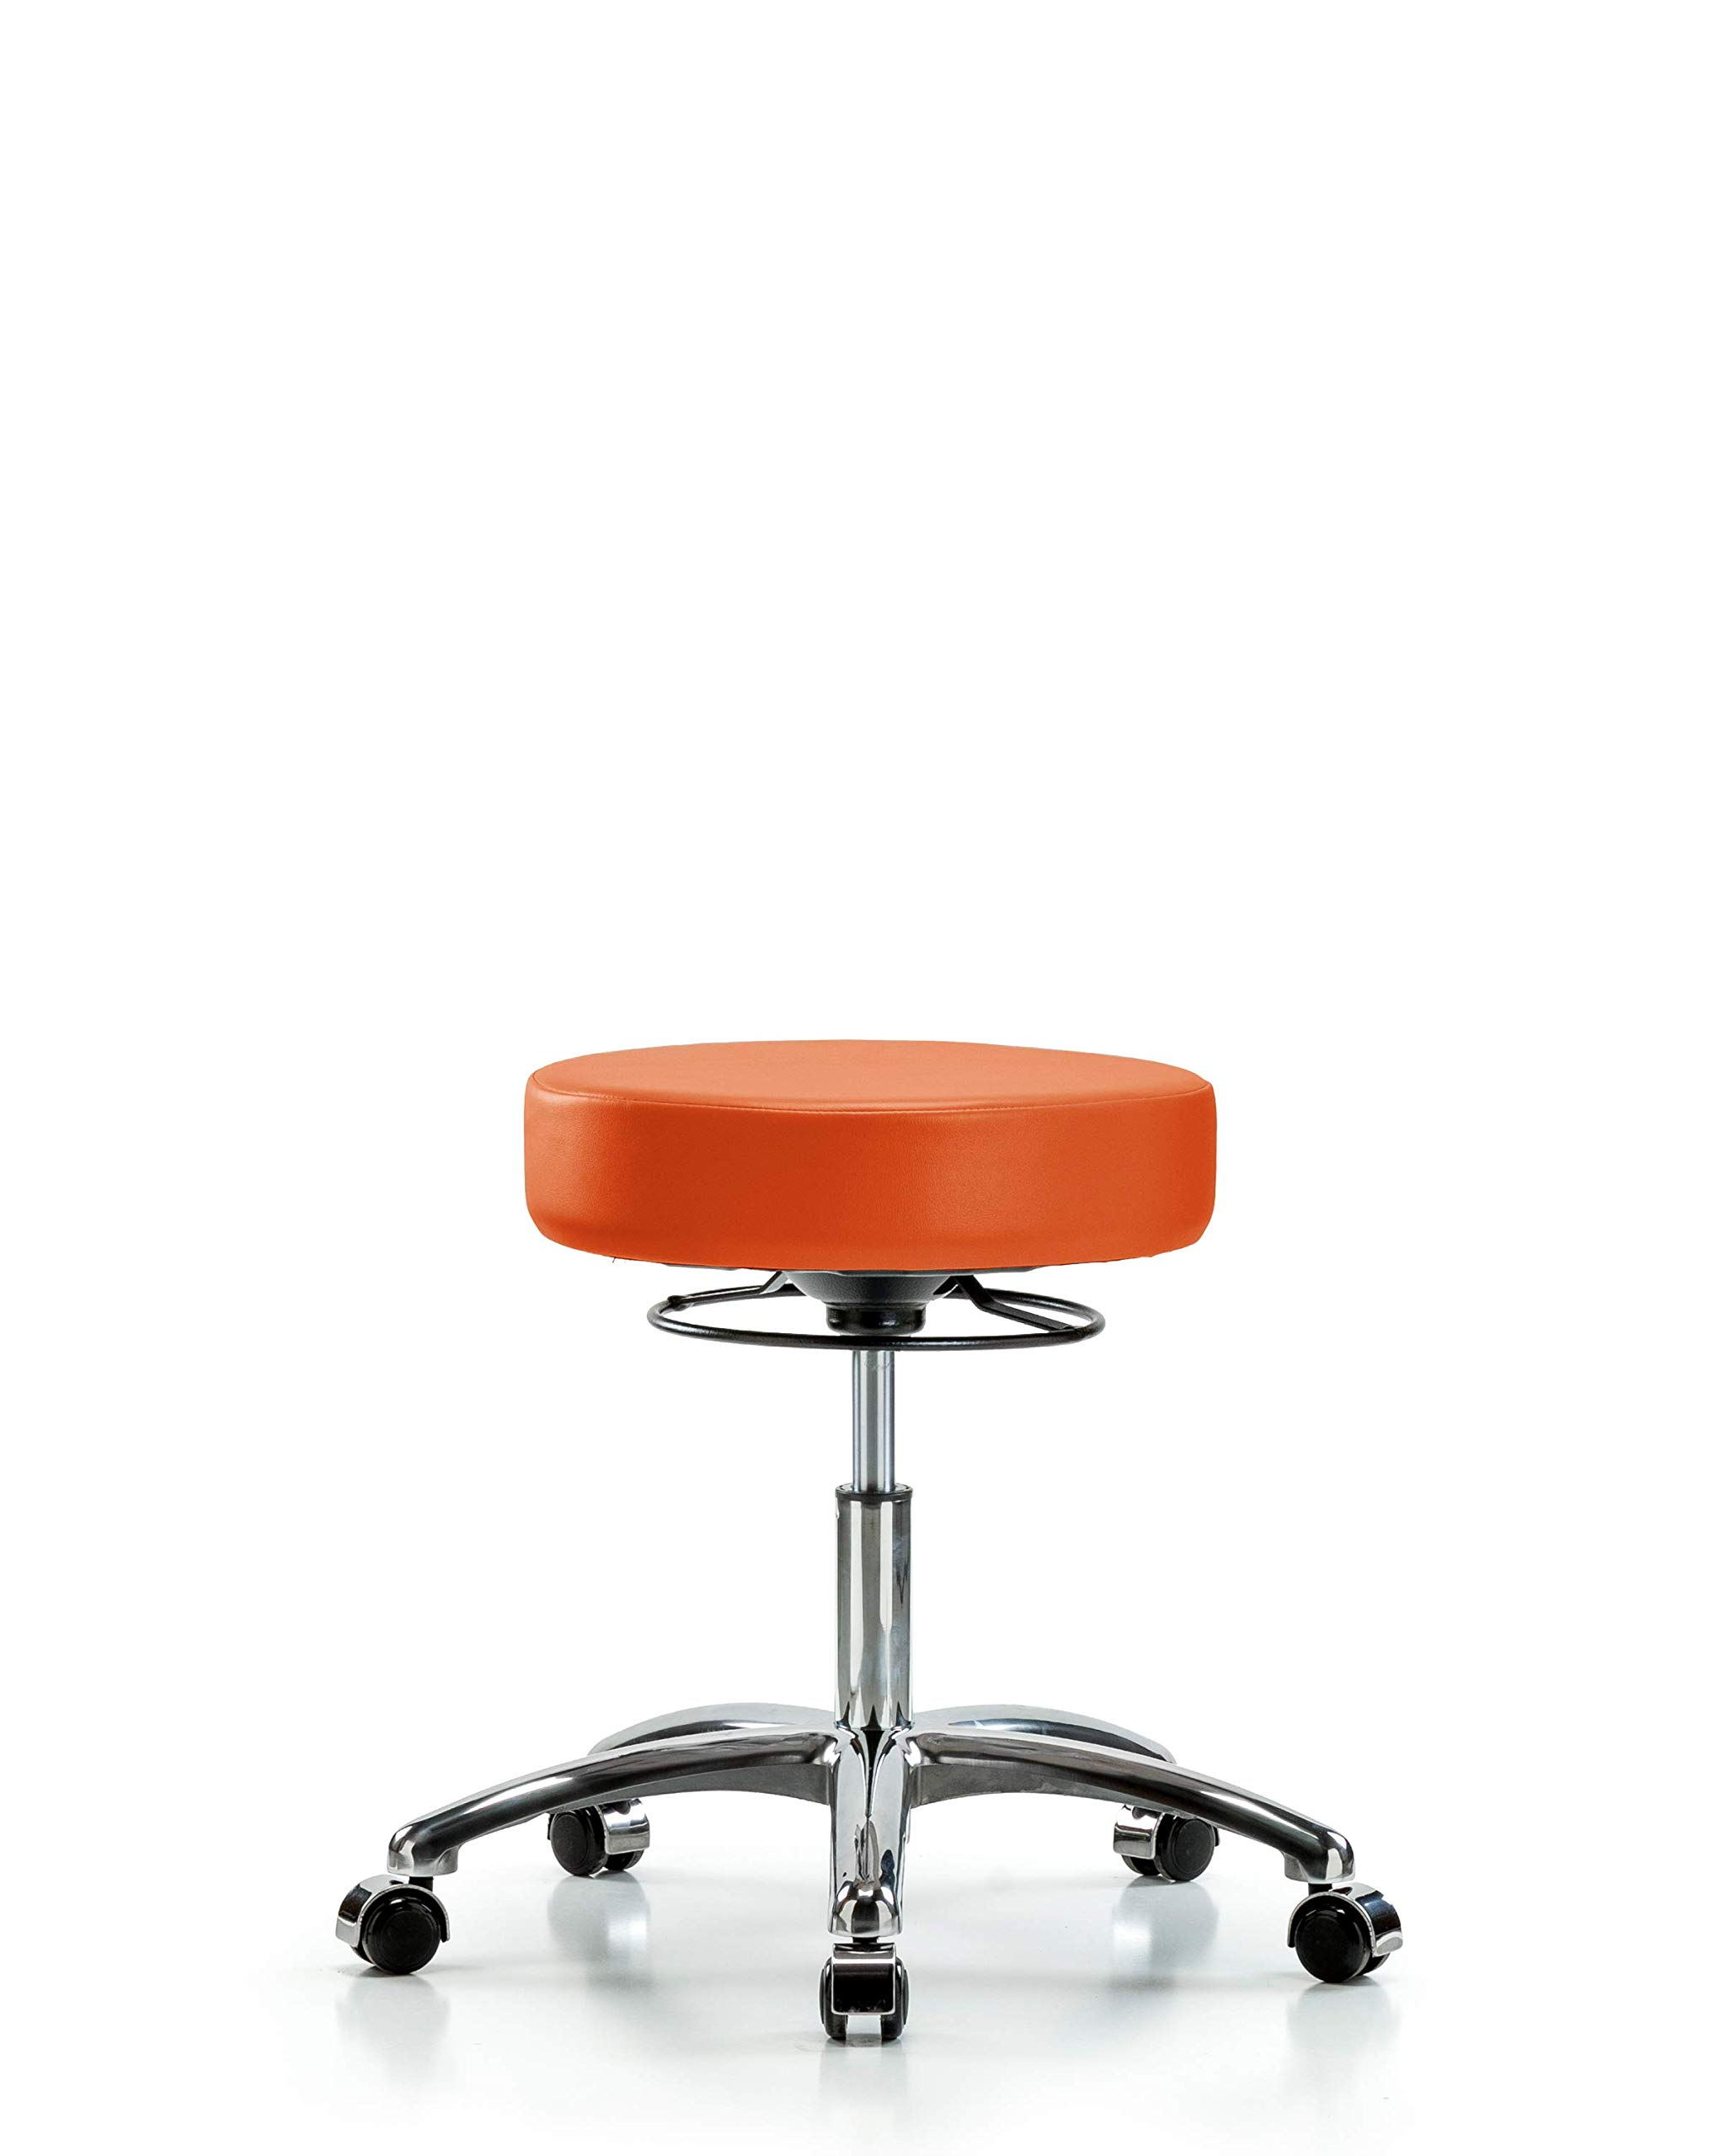 Adjustable Stool for Exam Rooms, Labs, and Dentists with Wheels - Chrome, Desk Height, Orange